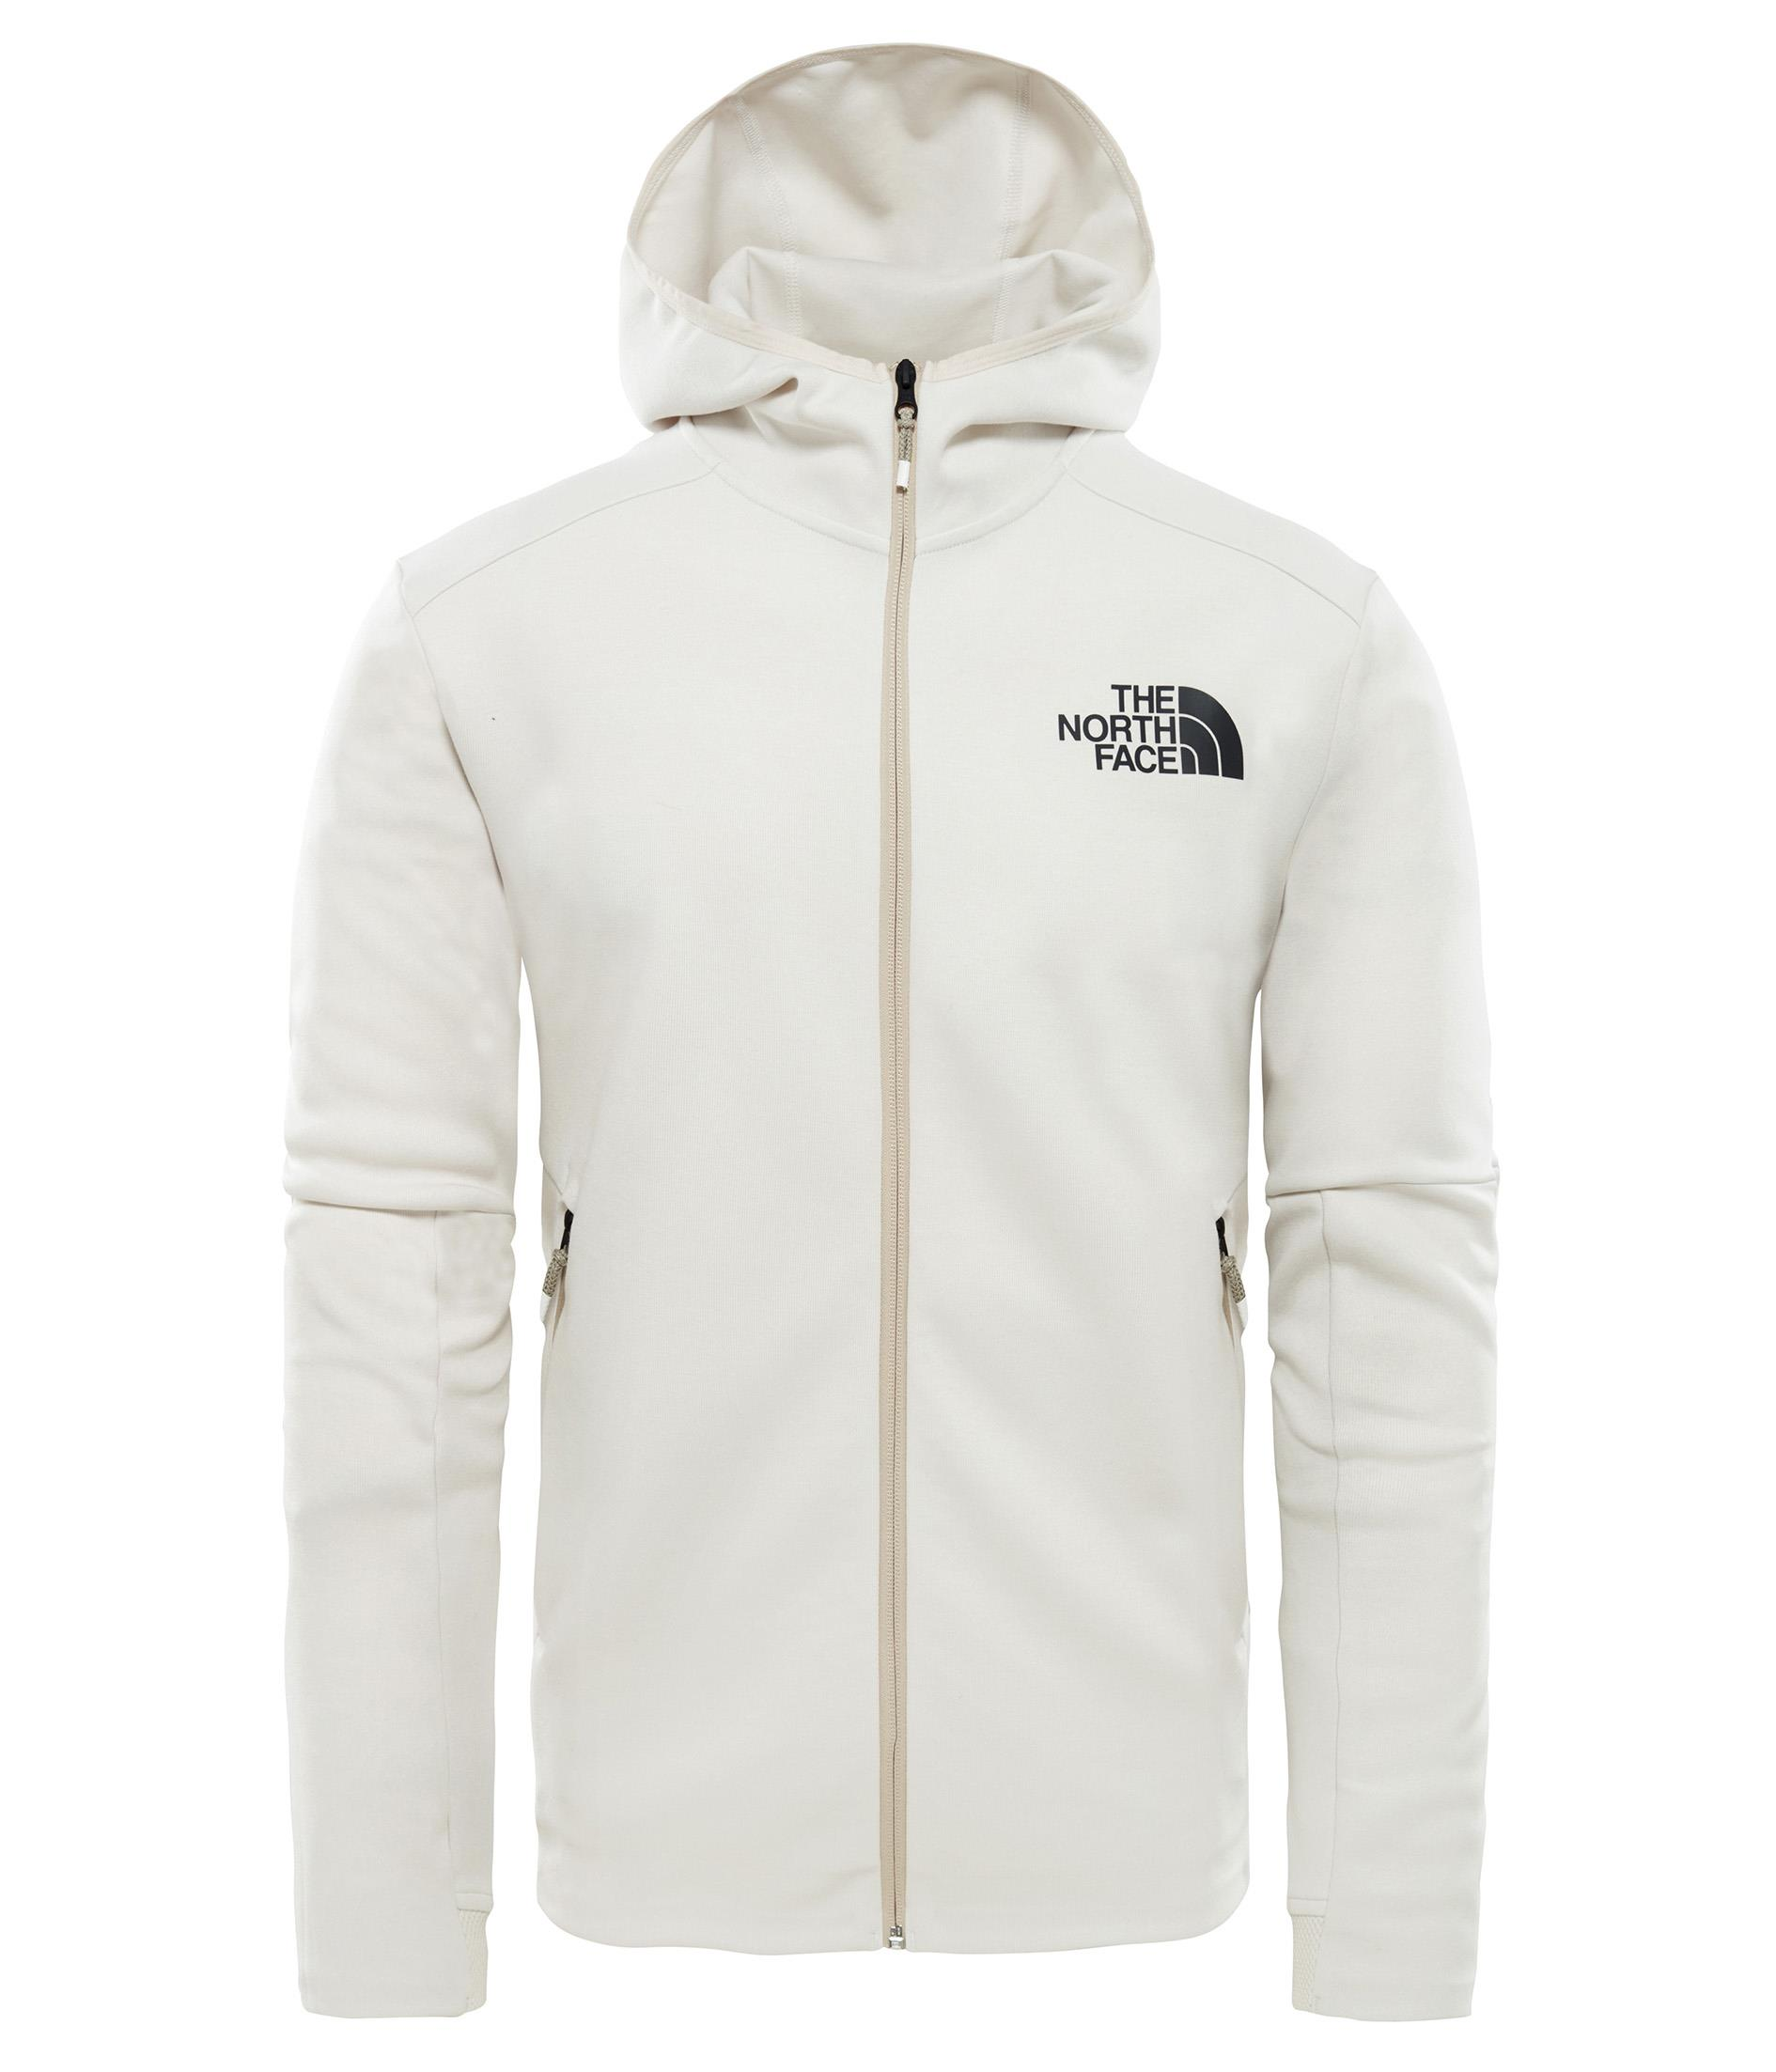 The North Face Erkek Vısta Tek Fz Hood Sweat Shirt